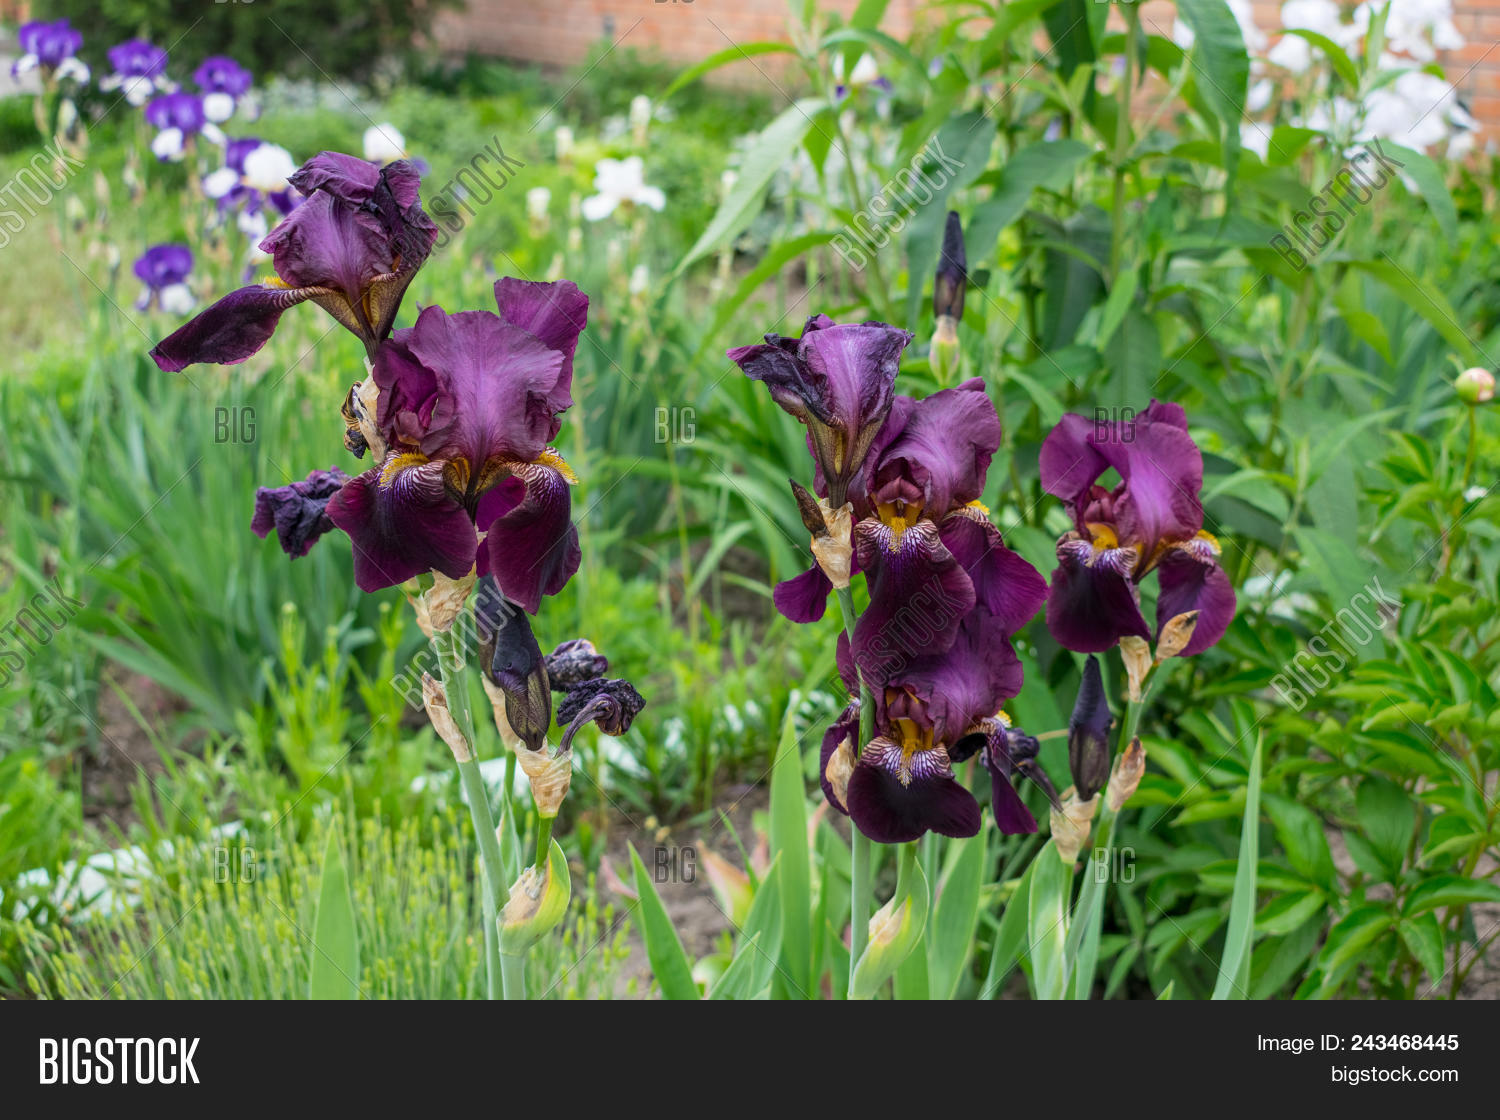 Close view iris image photo free trial bigstock close up view of an iris flower on background of green leaves and flower beds izmirmasajfo